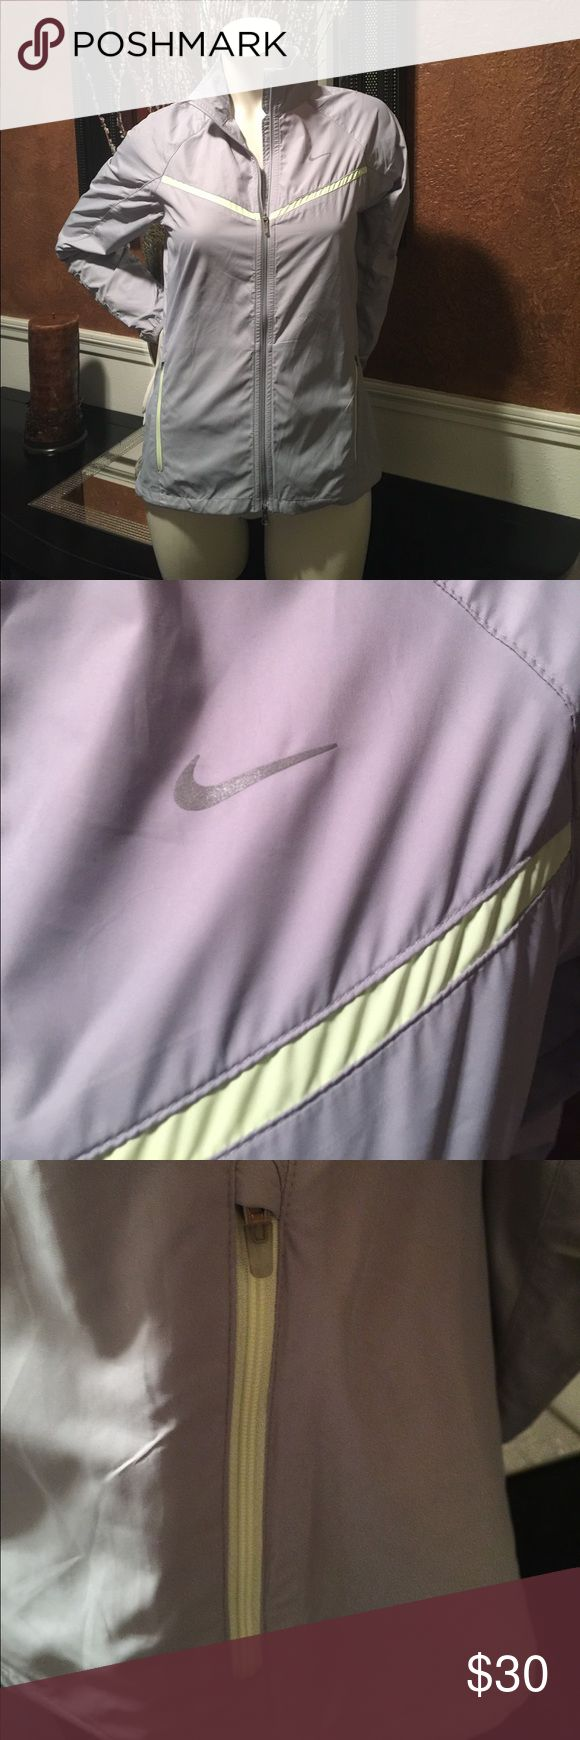 Women's Nike water repellent wind breaker In perfect condition. Semi-fitted.  Light gray with a light yellow stripe across the chest and outlining the zippers.  Vented back. Nike Jackets & Coats